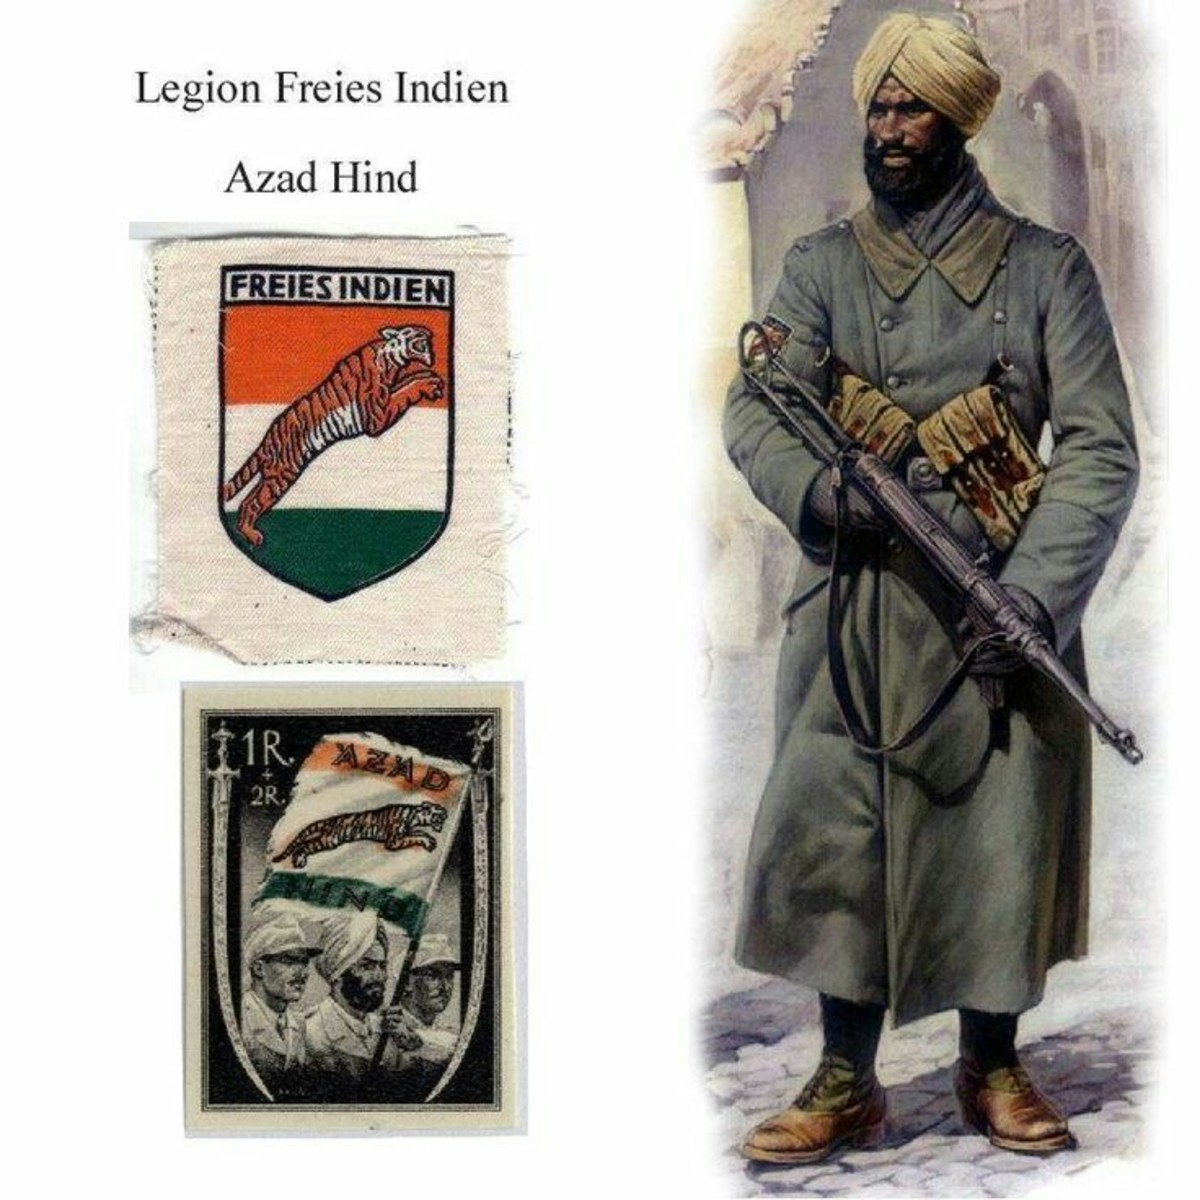 Hitler's India Legion in WW II